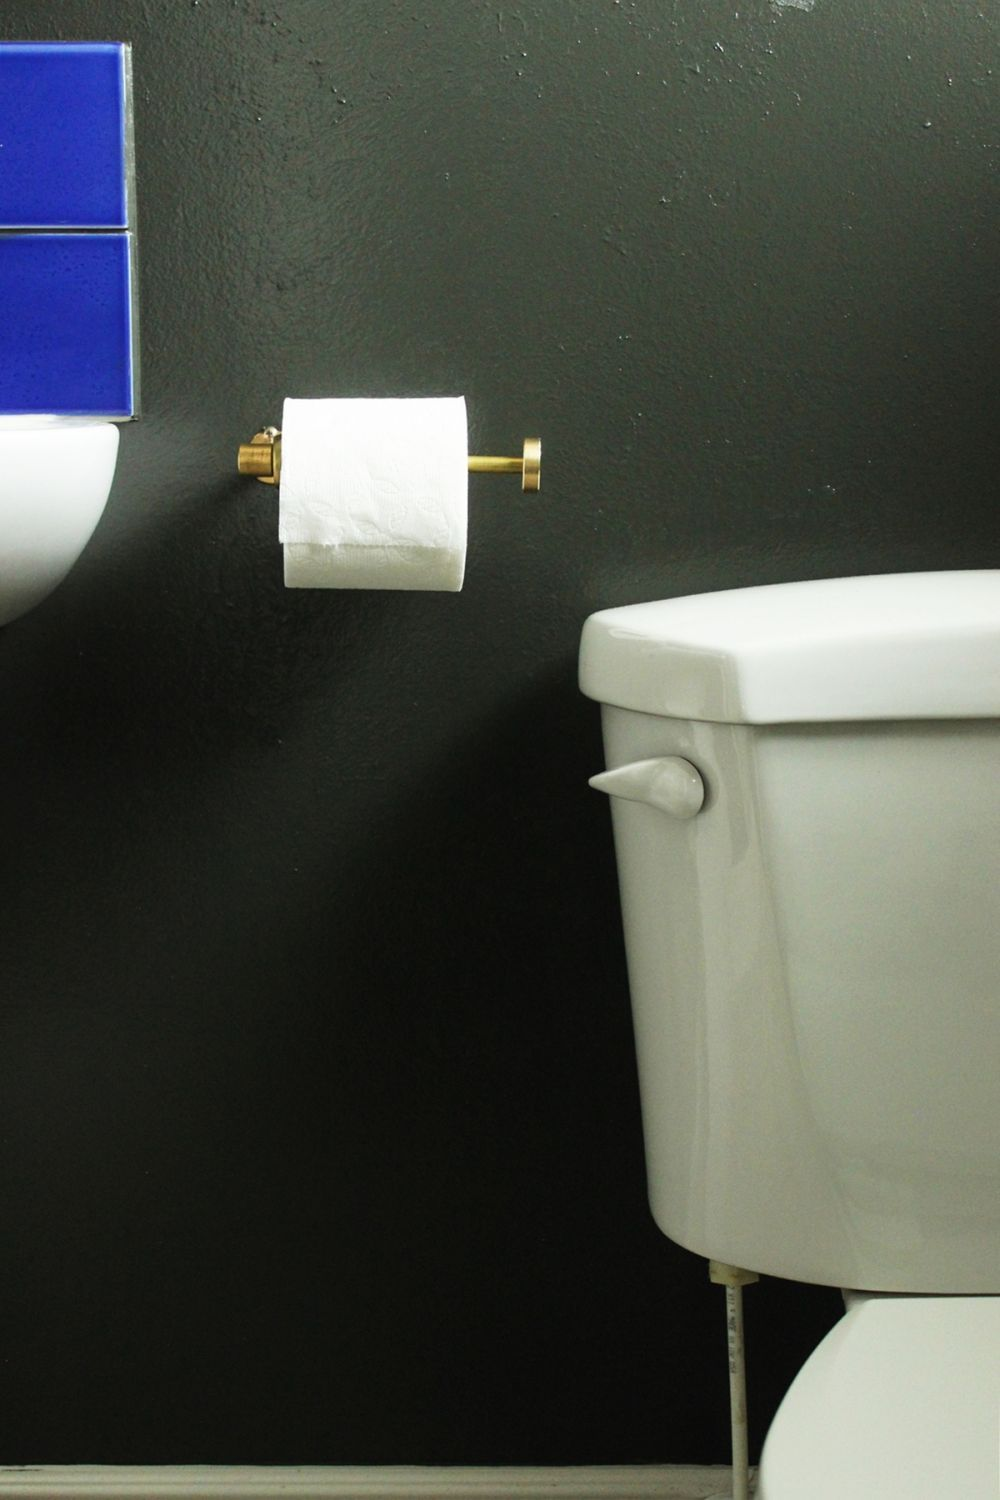 Diy Chic Brass Toilet Paper Holder